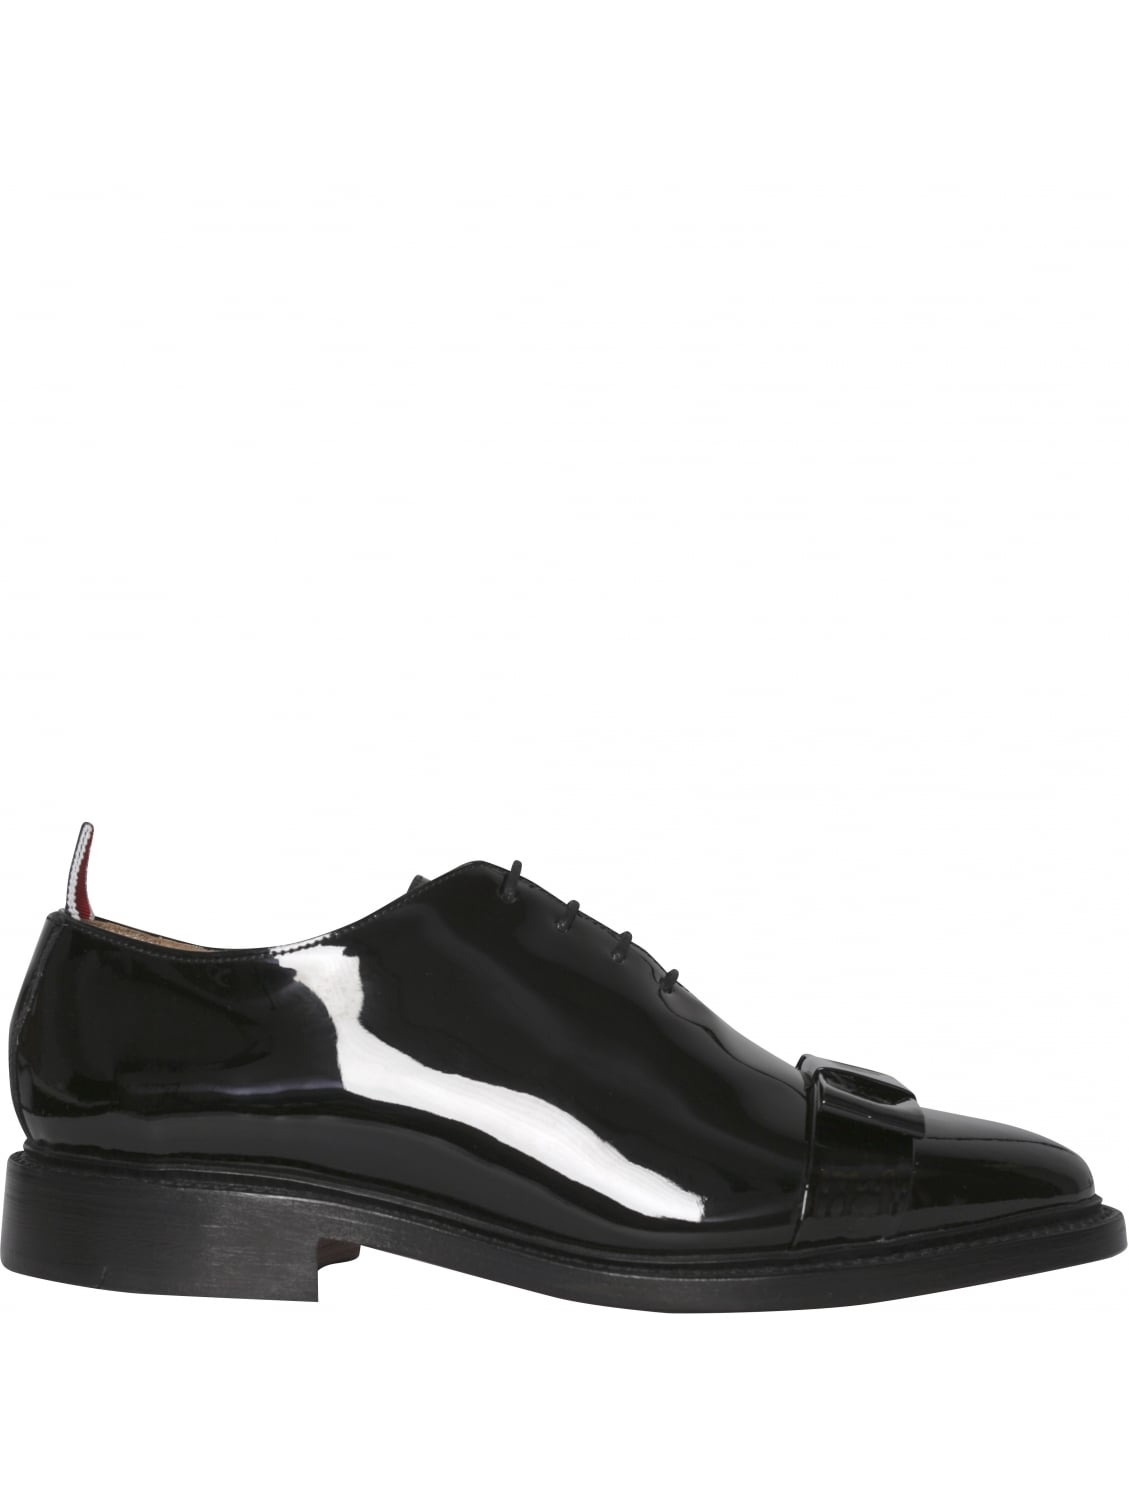 thom browne patent leather black bow oxford shoes in black